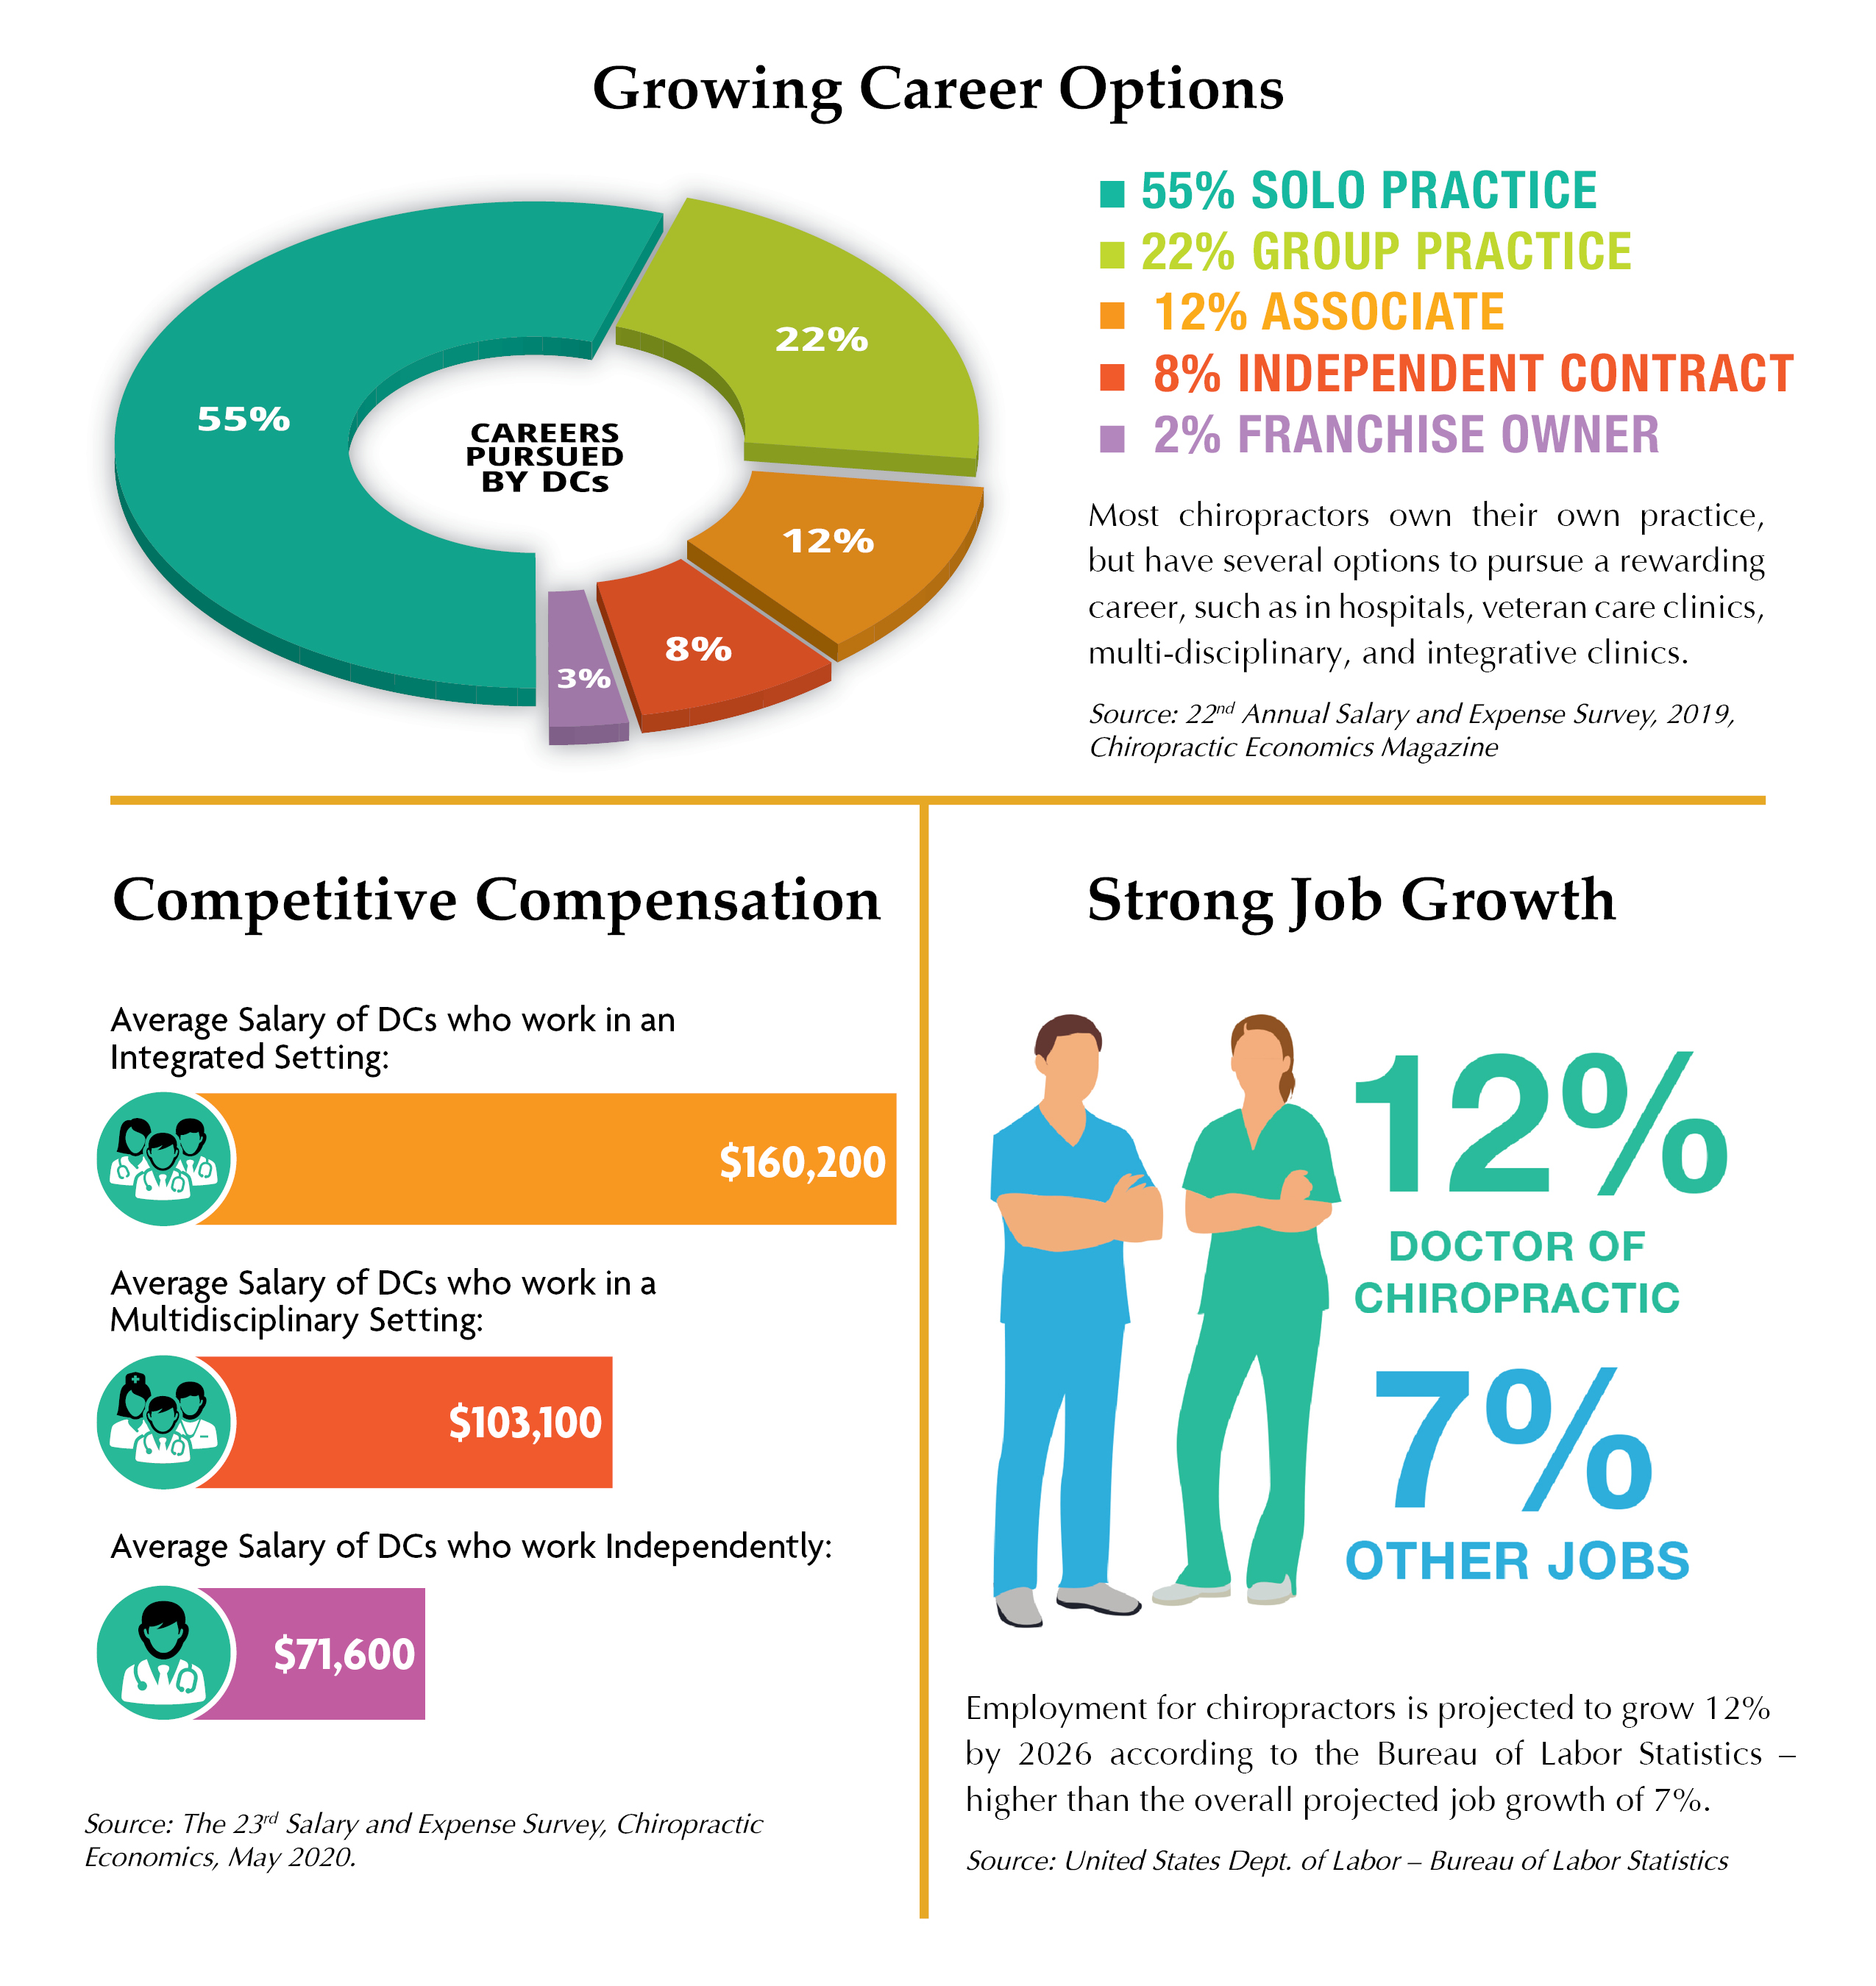 Chiropractic career options, competitive compensation, and job growth infographic